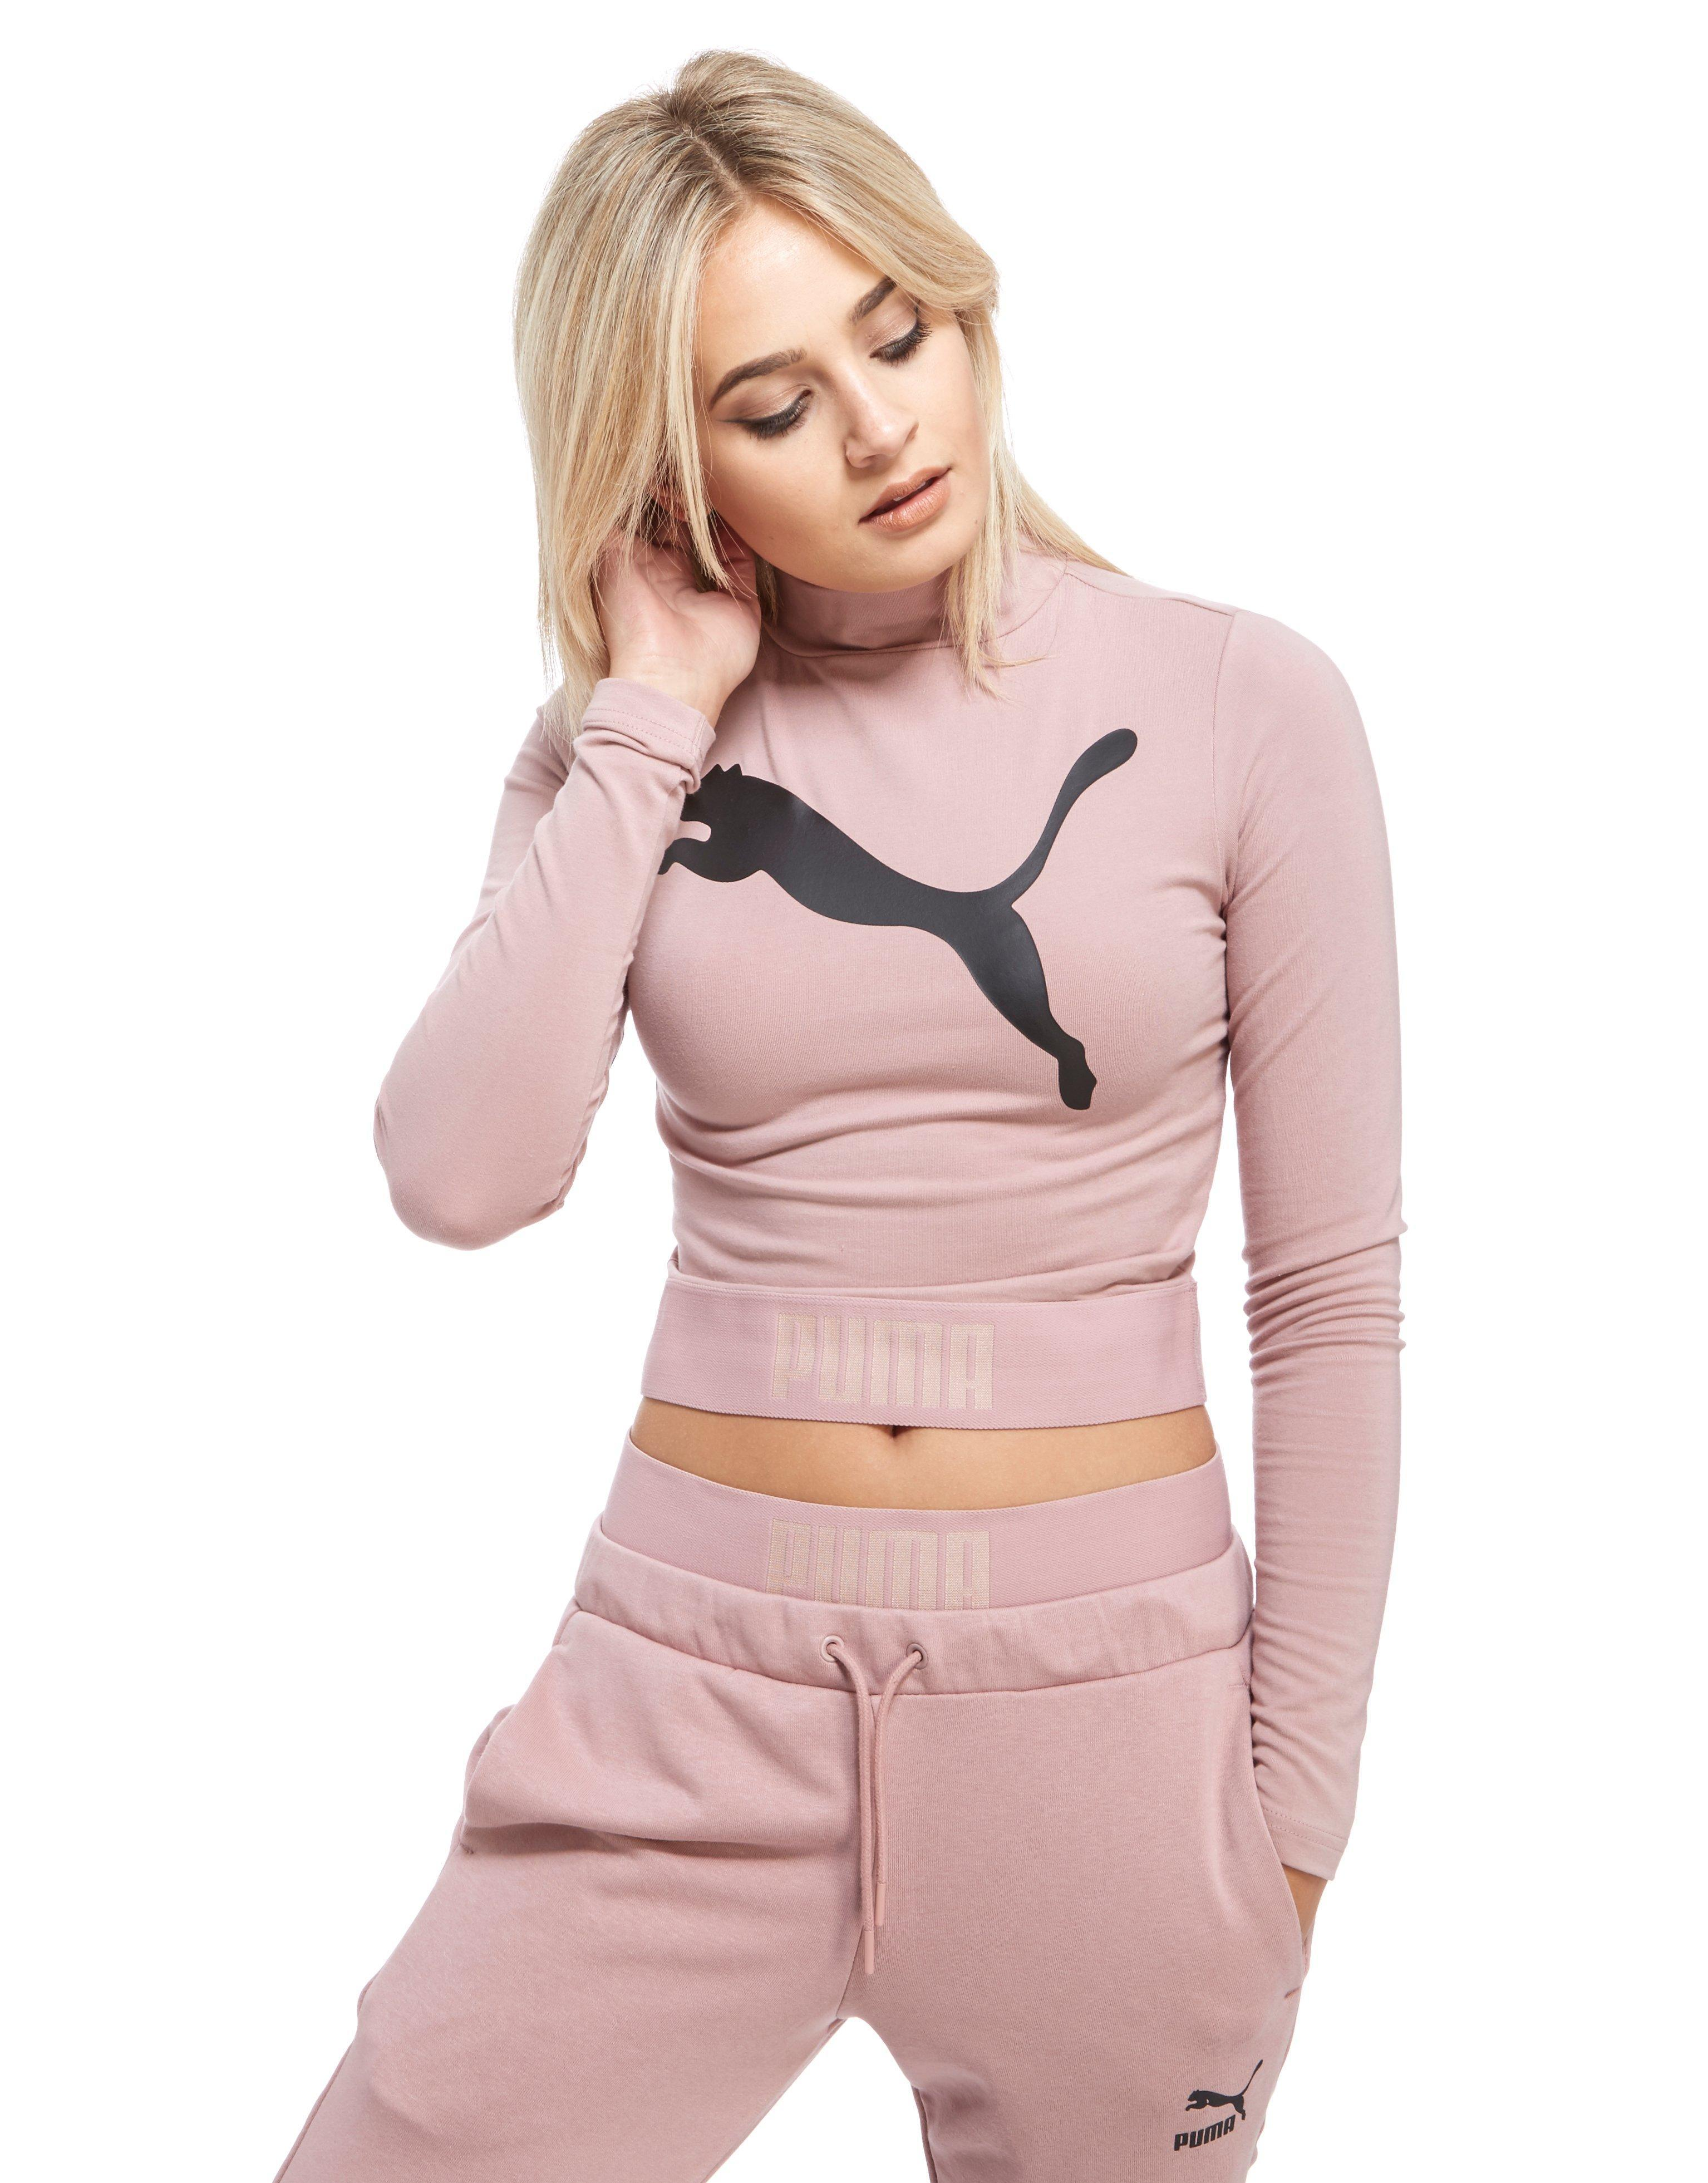 e81316fa91f02 PUMA High Neck Long-sleeved Crop Top in Pink - Lyst